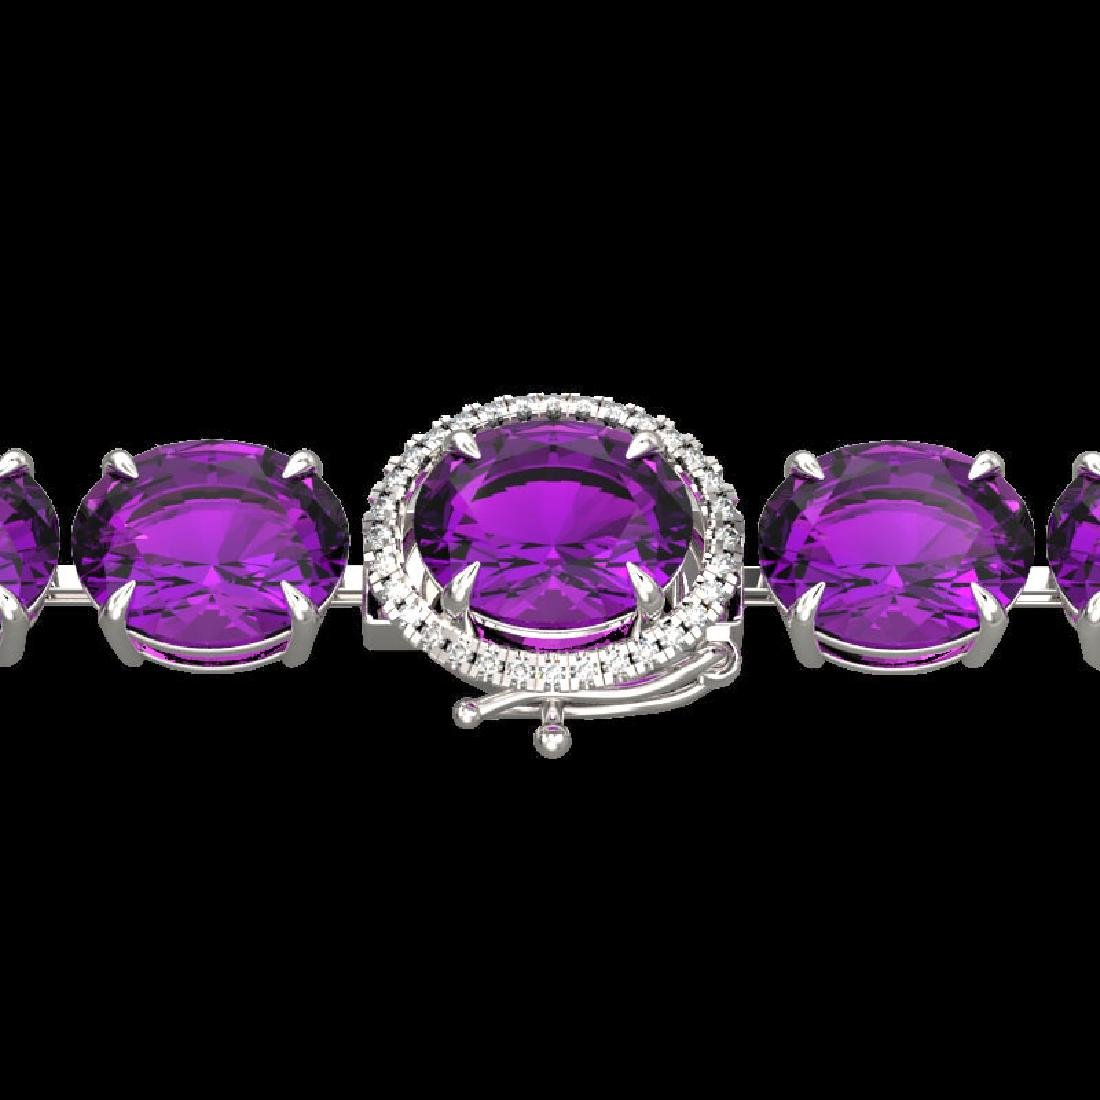 78 CTW Amethyst & Micro Pave VS/SI Diamond Halo